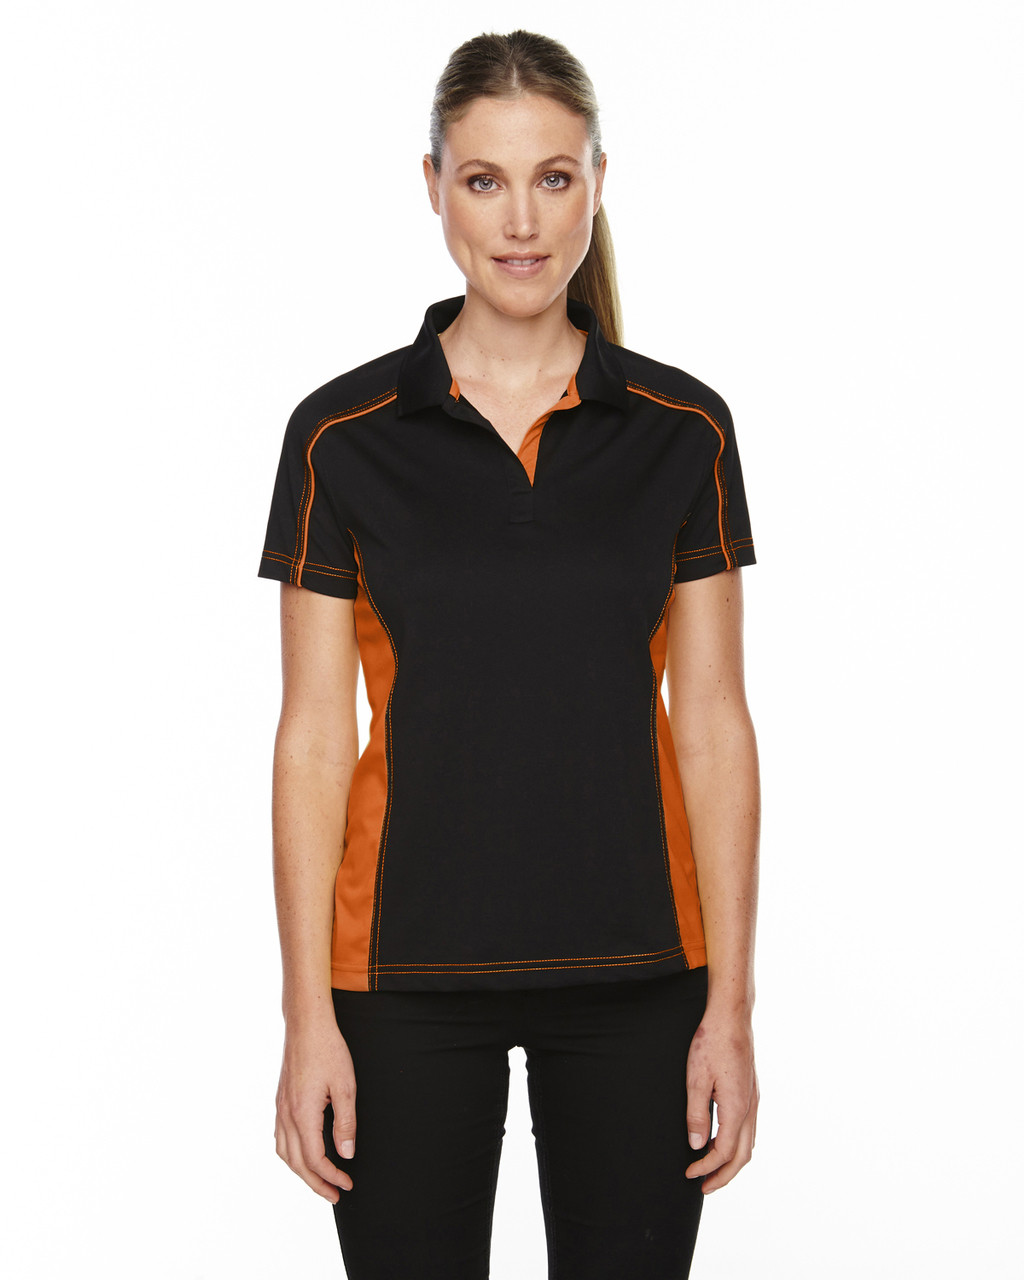 Black/Orange - 75113 Ash City - Extreme Eperformance Ladies' Fuse Plus Colourblock Polo Shirt | Blankclothing.ca